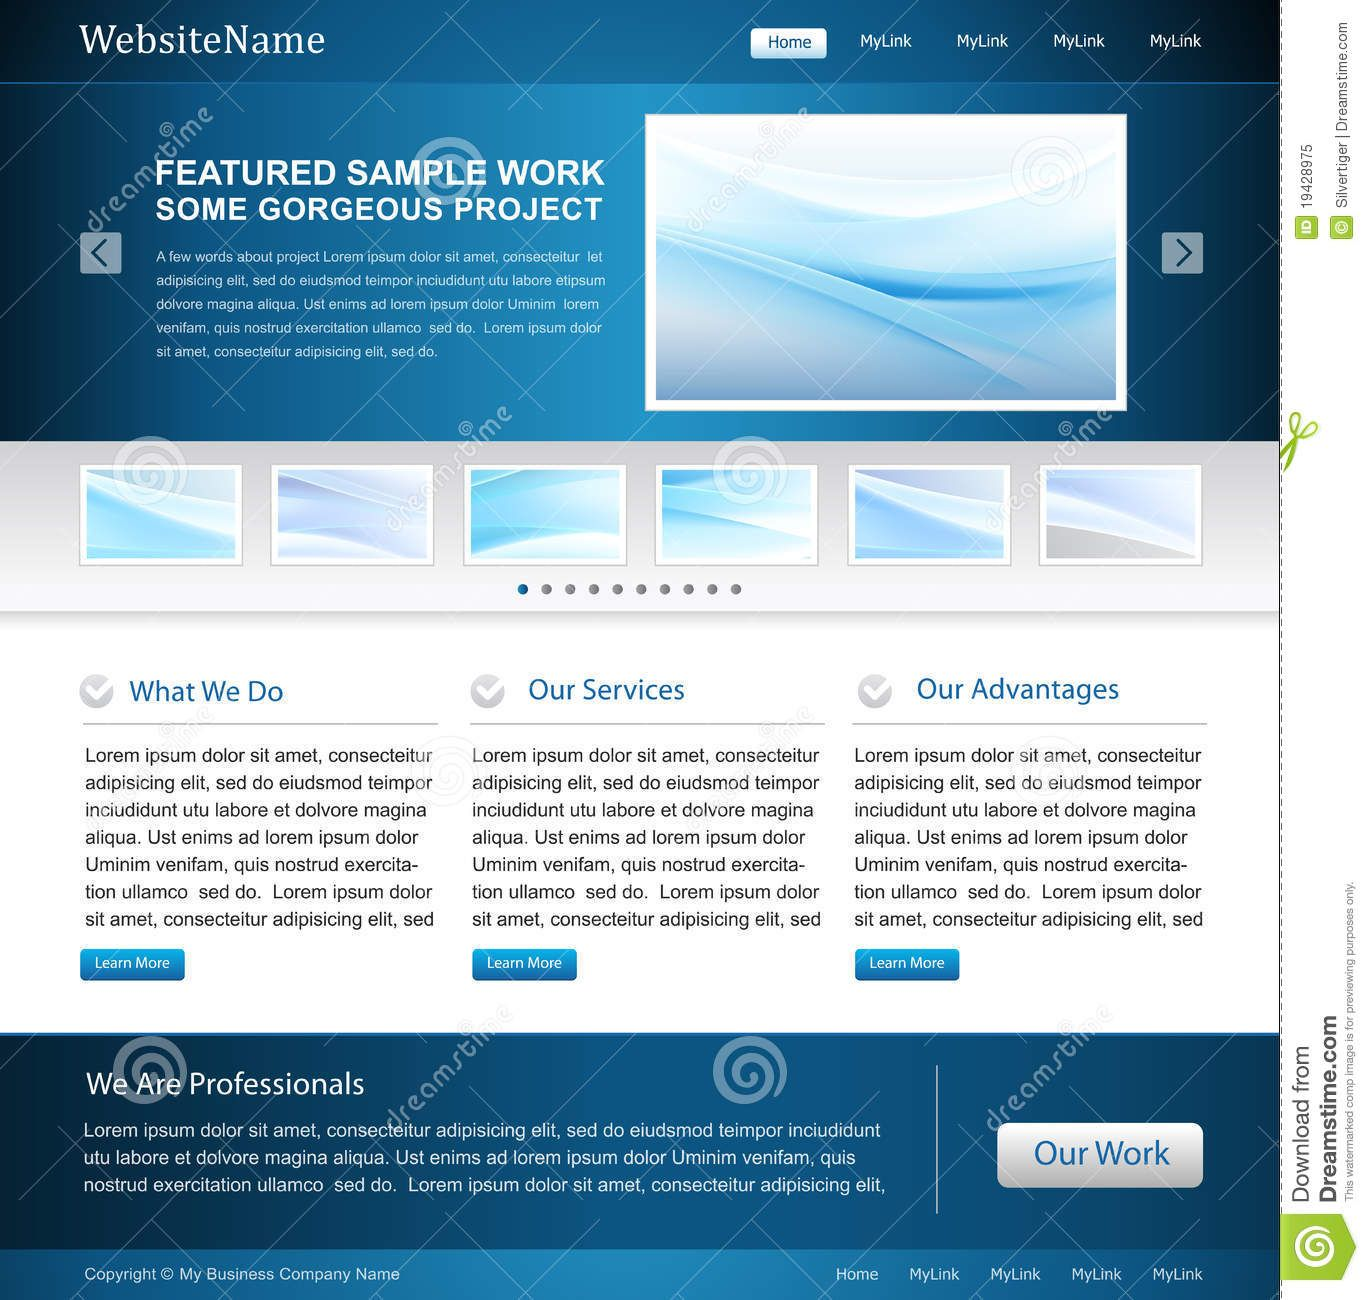 Business website design template royalty free stock photo image business website design template royalty free stock photo image 19428975 wajeb Choice Image